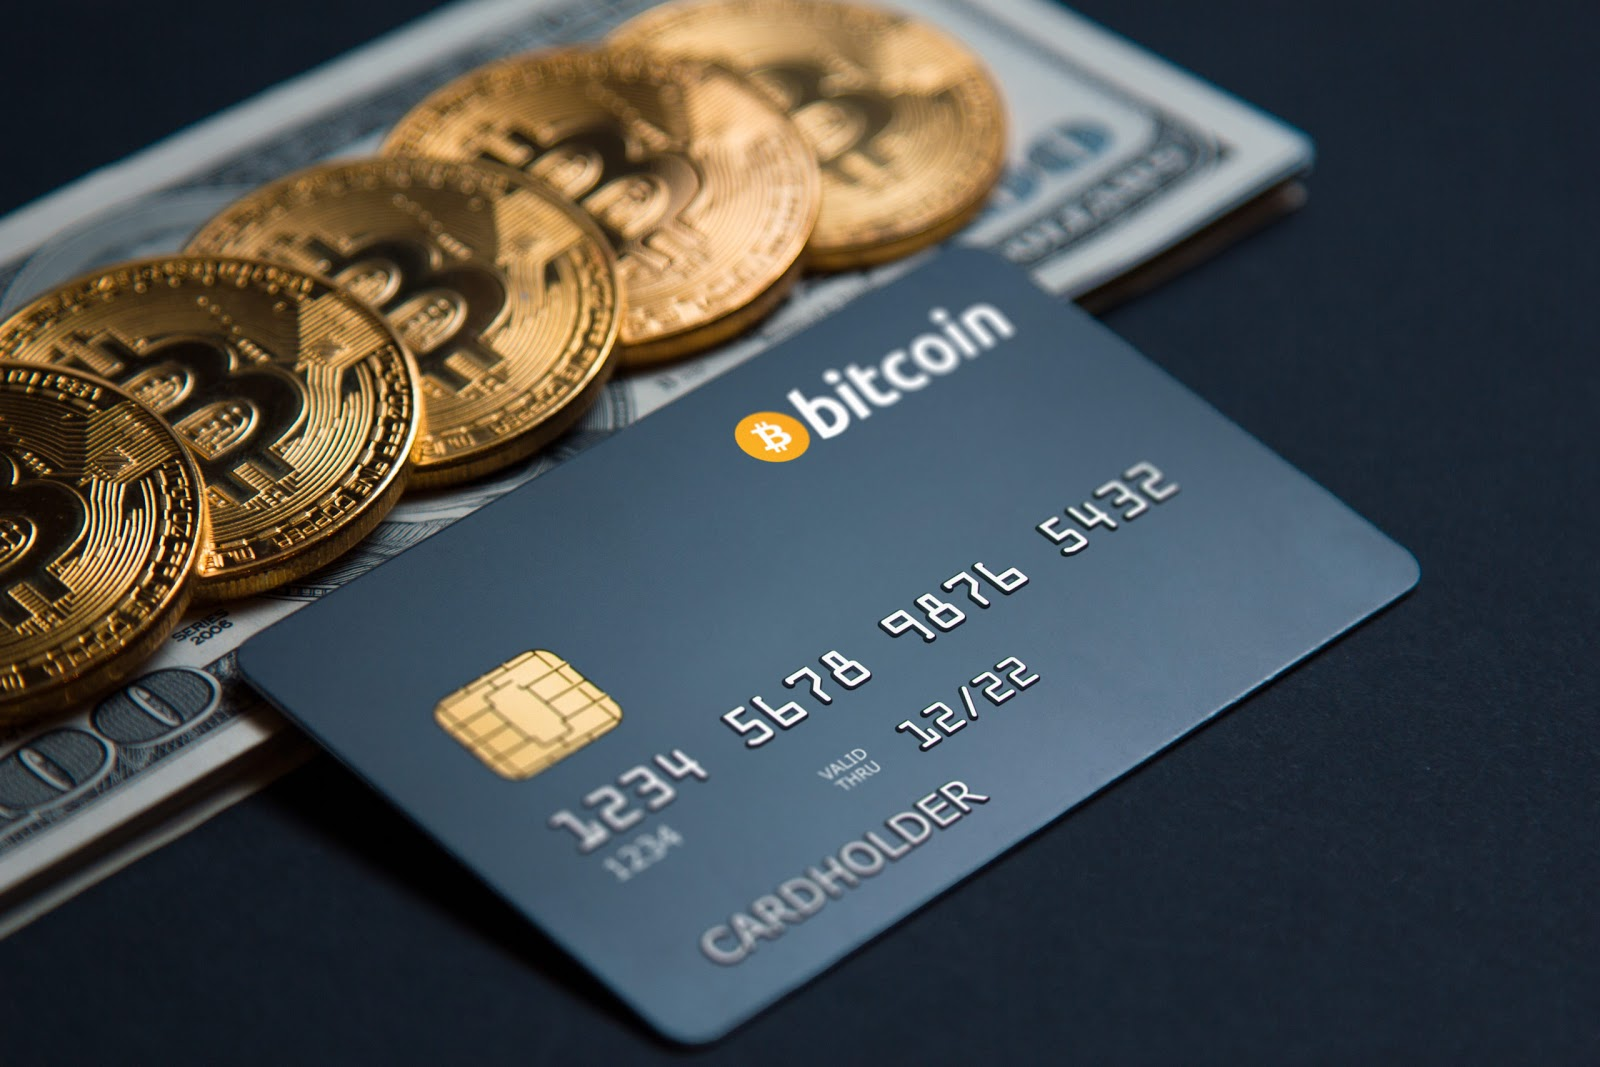 Payments Giant VISA To Incorporate Cryptocurrencies